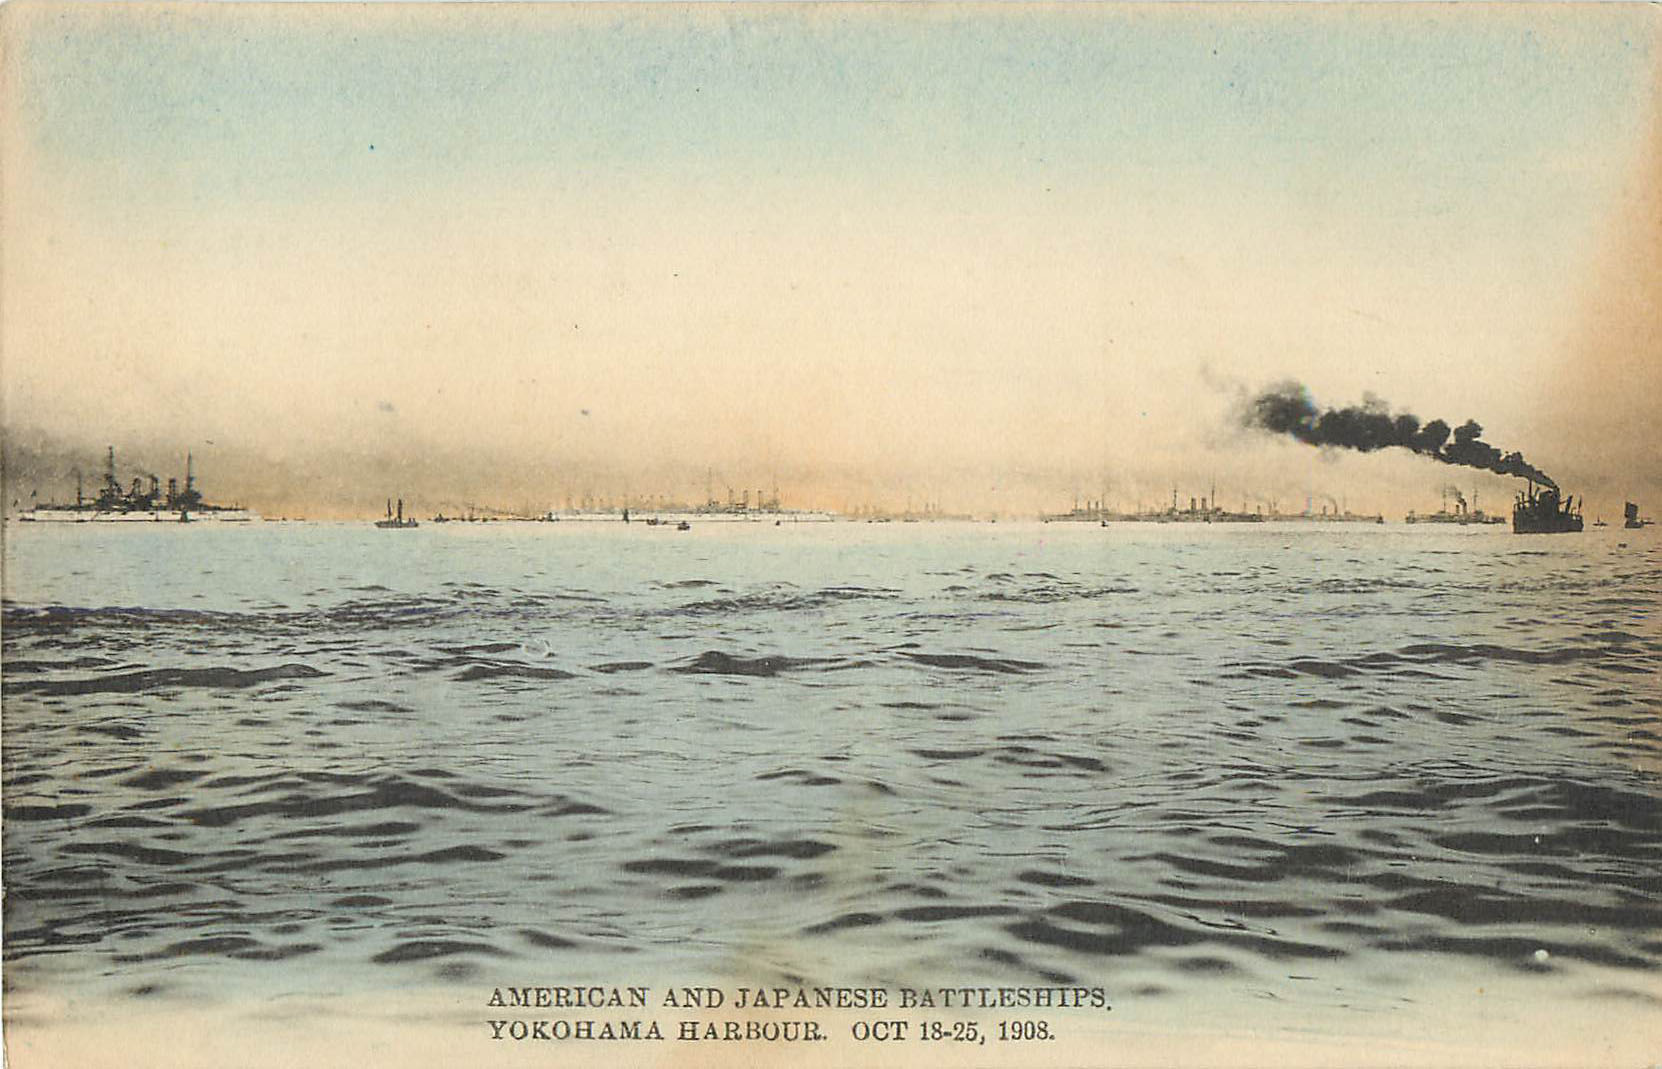 American and Japanese Battlesships, Yokohama Harbour, Japan